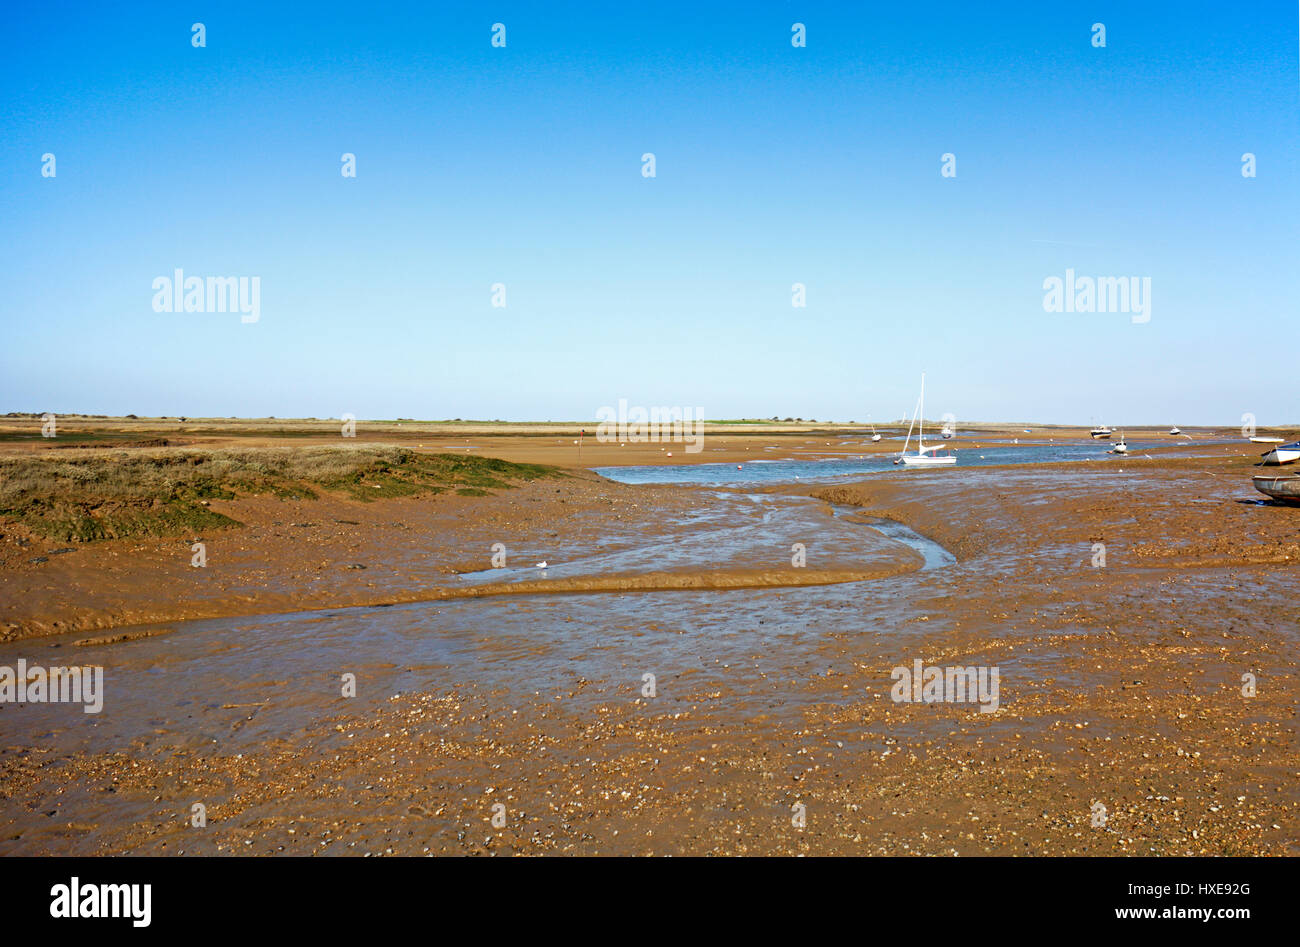 A view of an inlet at low tide in an Area of Outstanding Natural Beauty in North Norfolk at Brancaster Staithe, - Stock Image